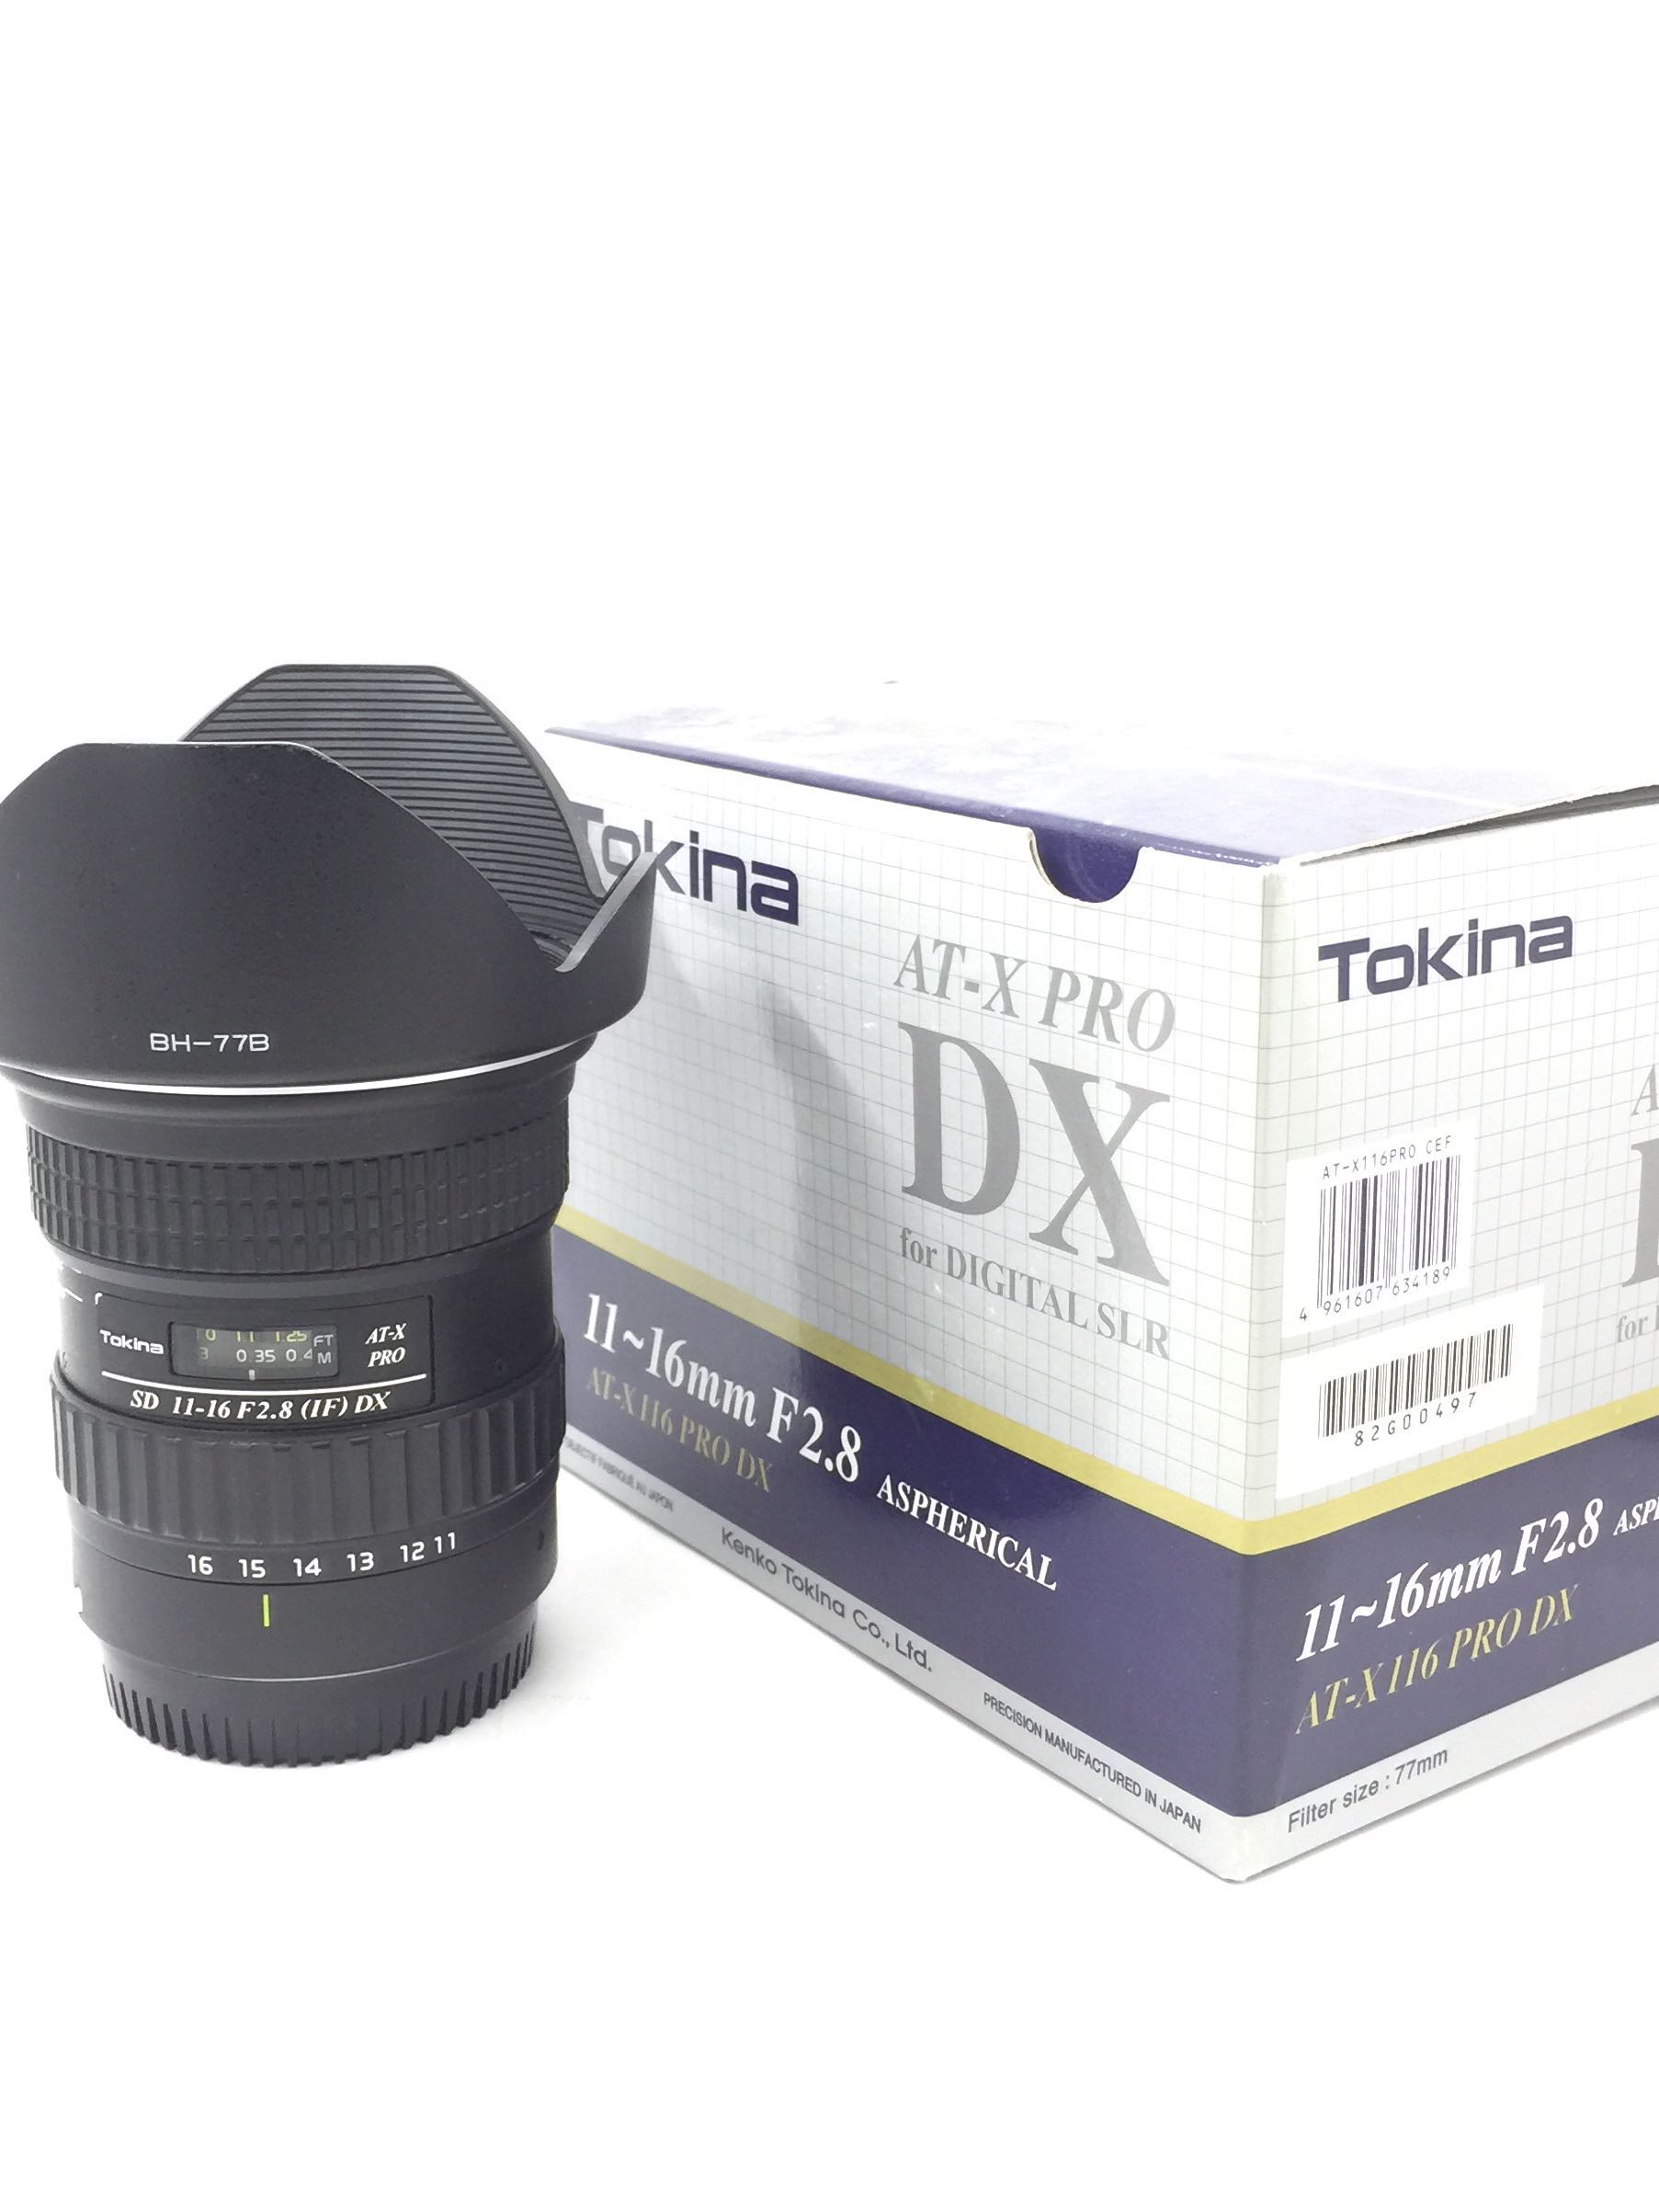 Tokina 11-16mm F2.8 (IF) DX (Box) Canon Mount, Photography, Lenses ...